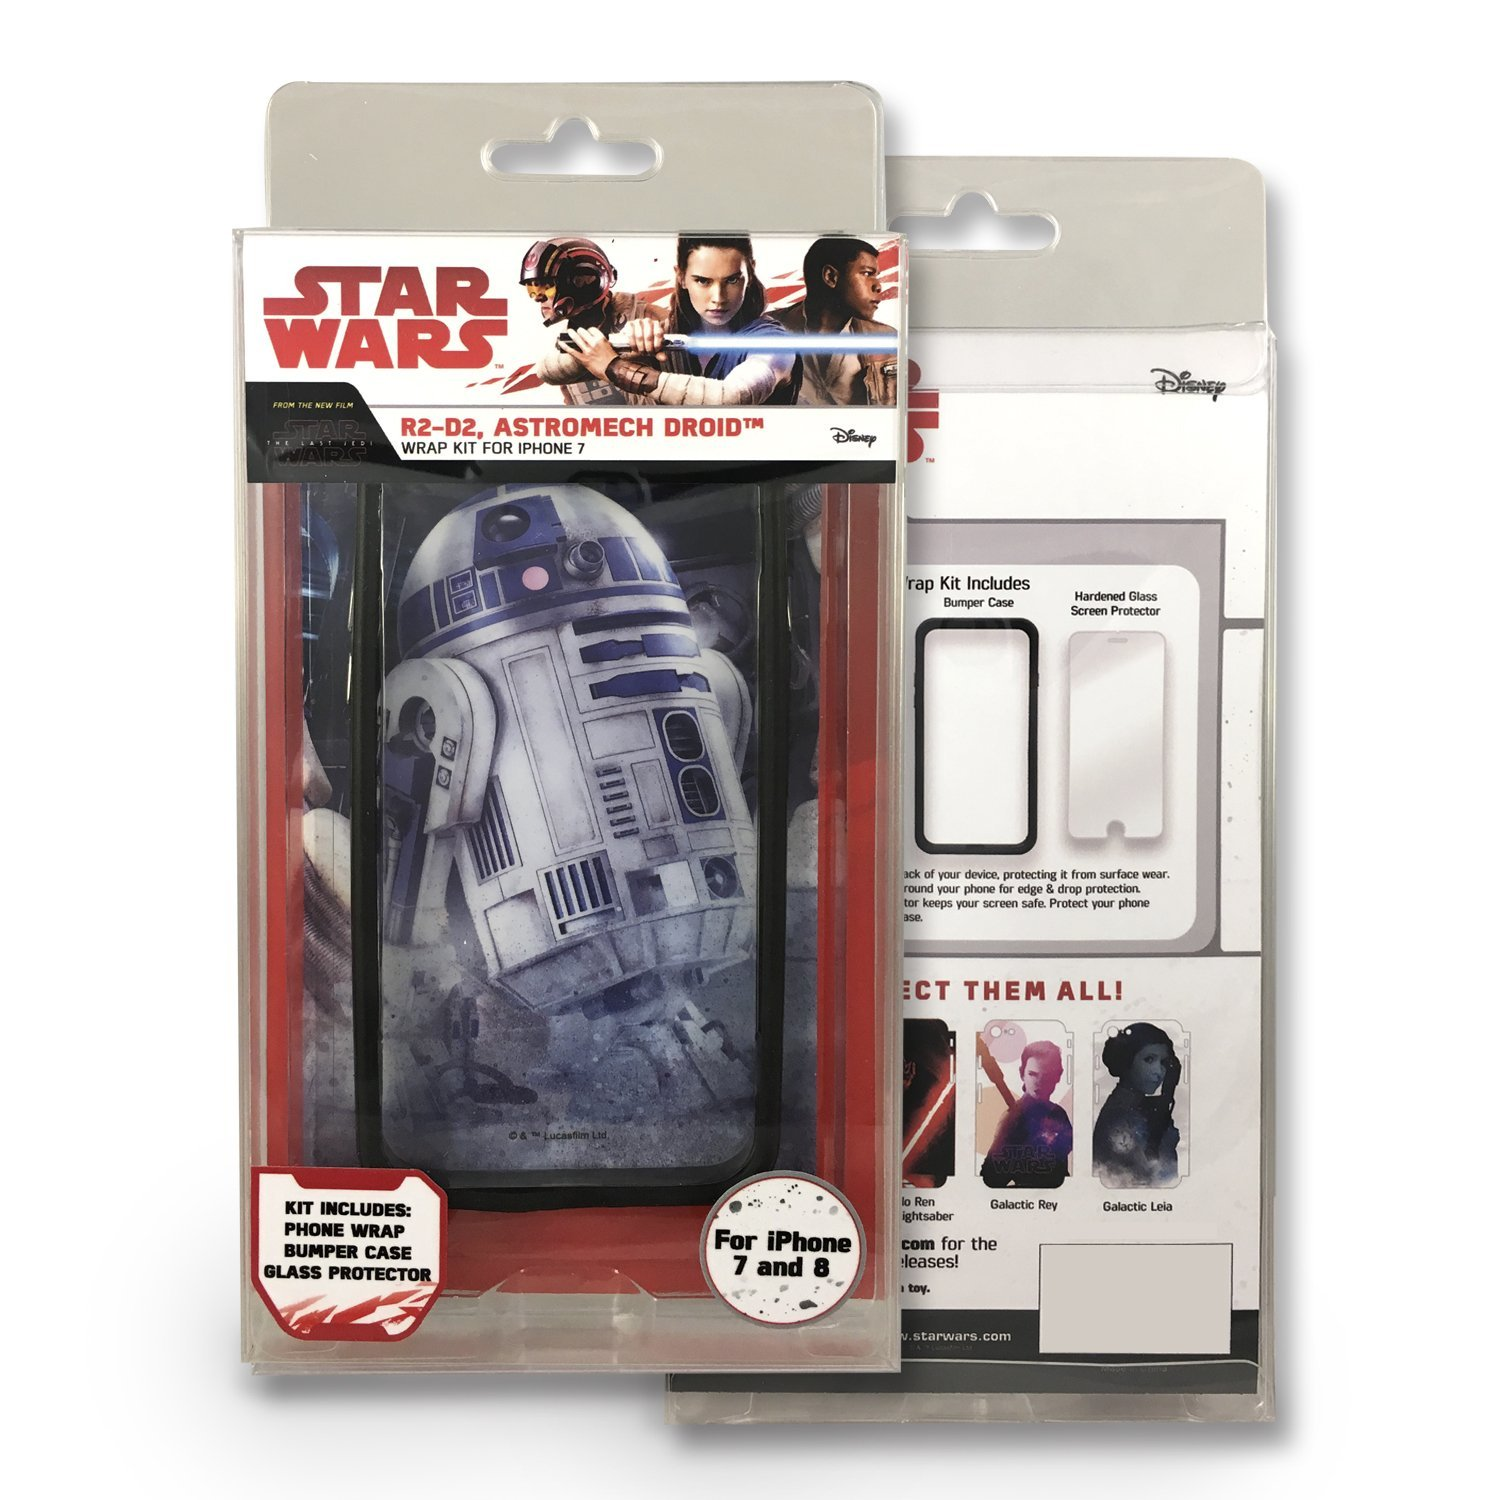 TLJ R2-D2 Astromech Droid iPhone 7 & 8 Wrap Kit 1